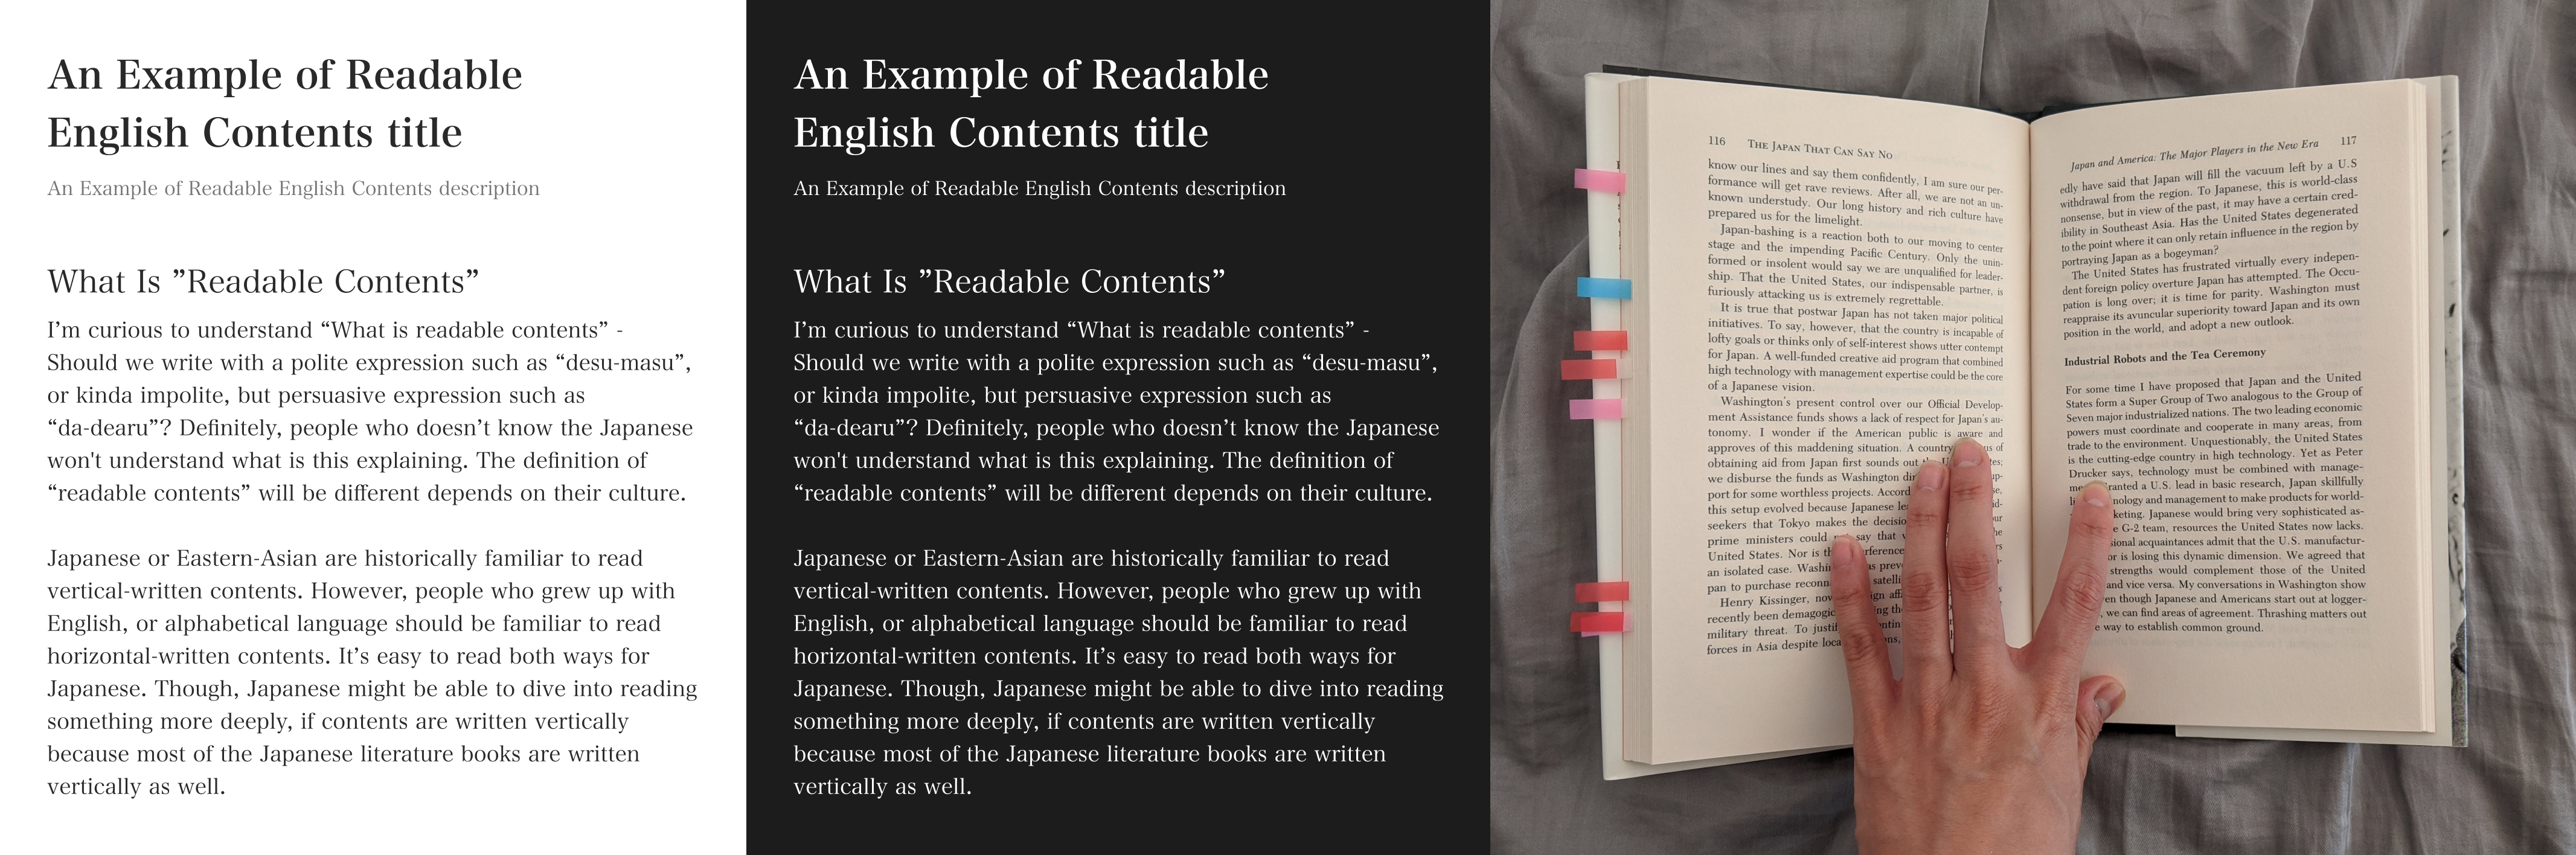 Examples of readable article - English